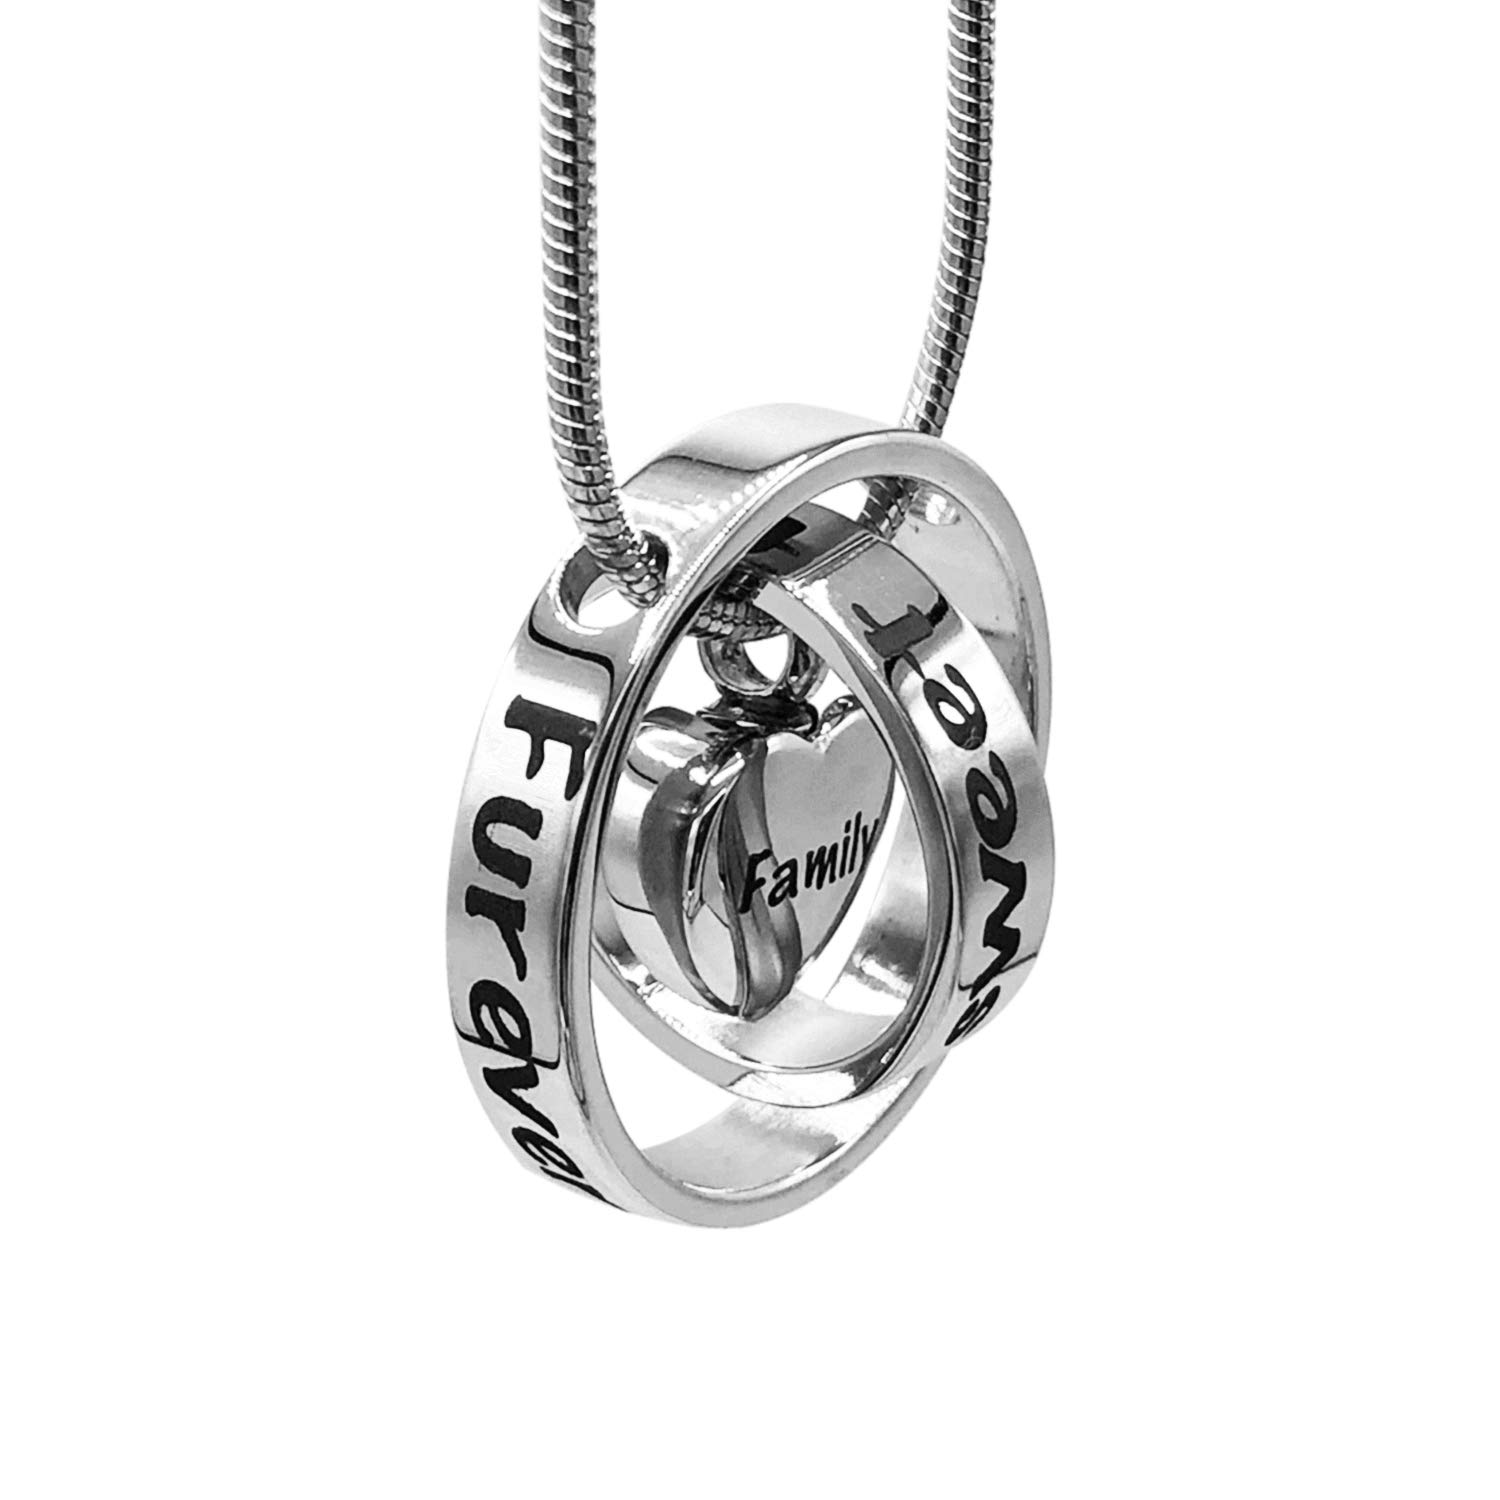 PrivitChiCo Furever in My Heart Stainless Steel Pet Cremation Jewelry Double Ring Heart Keepsake, 24'' Necklace Pendant Locket Set for Dog Cat and Pet Loss Gift Womens Jewelry by PrivitChiCo